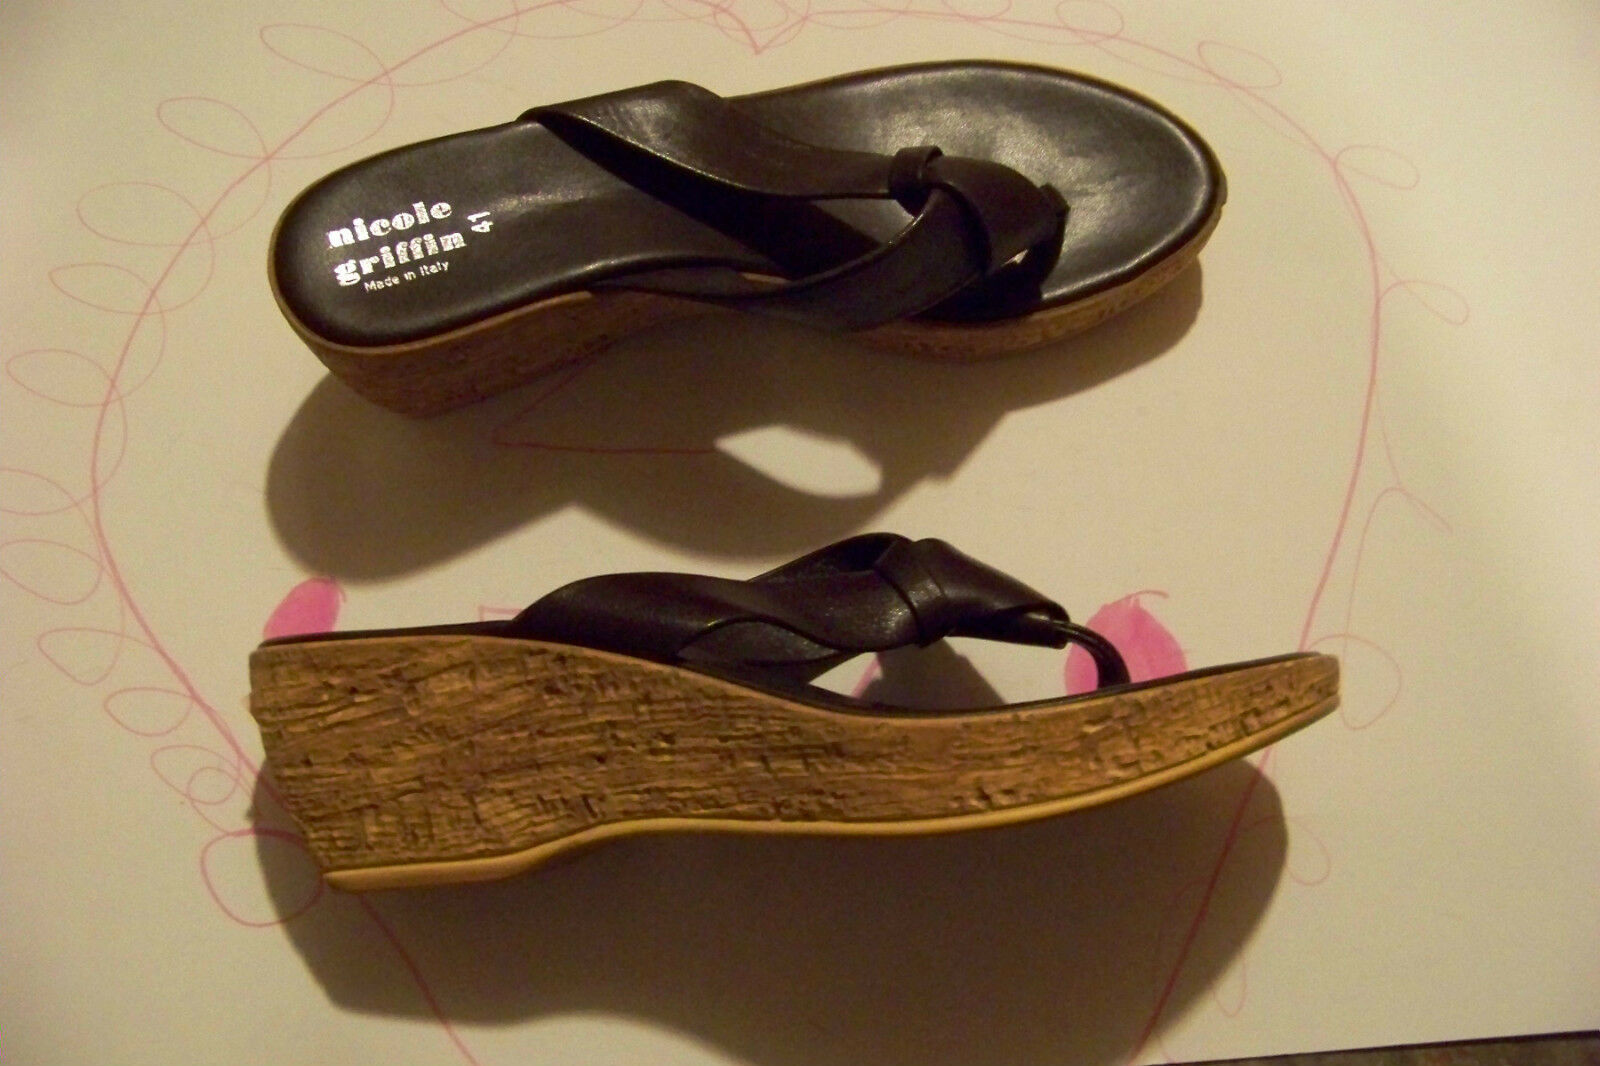 womens wedges nicole griffin brown leather flip flop wedges womens heels shoes size 41 c86ee0